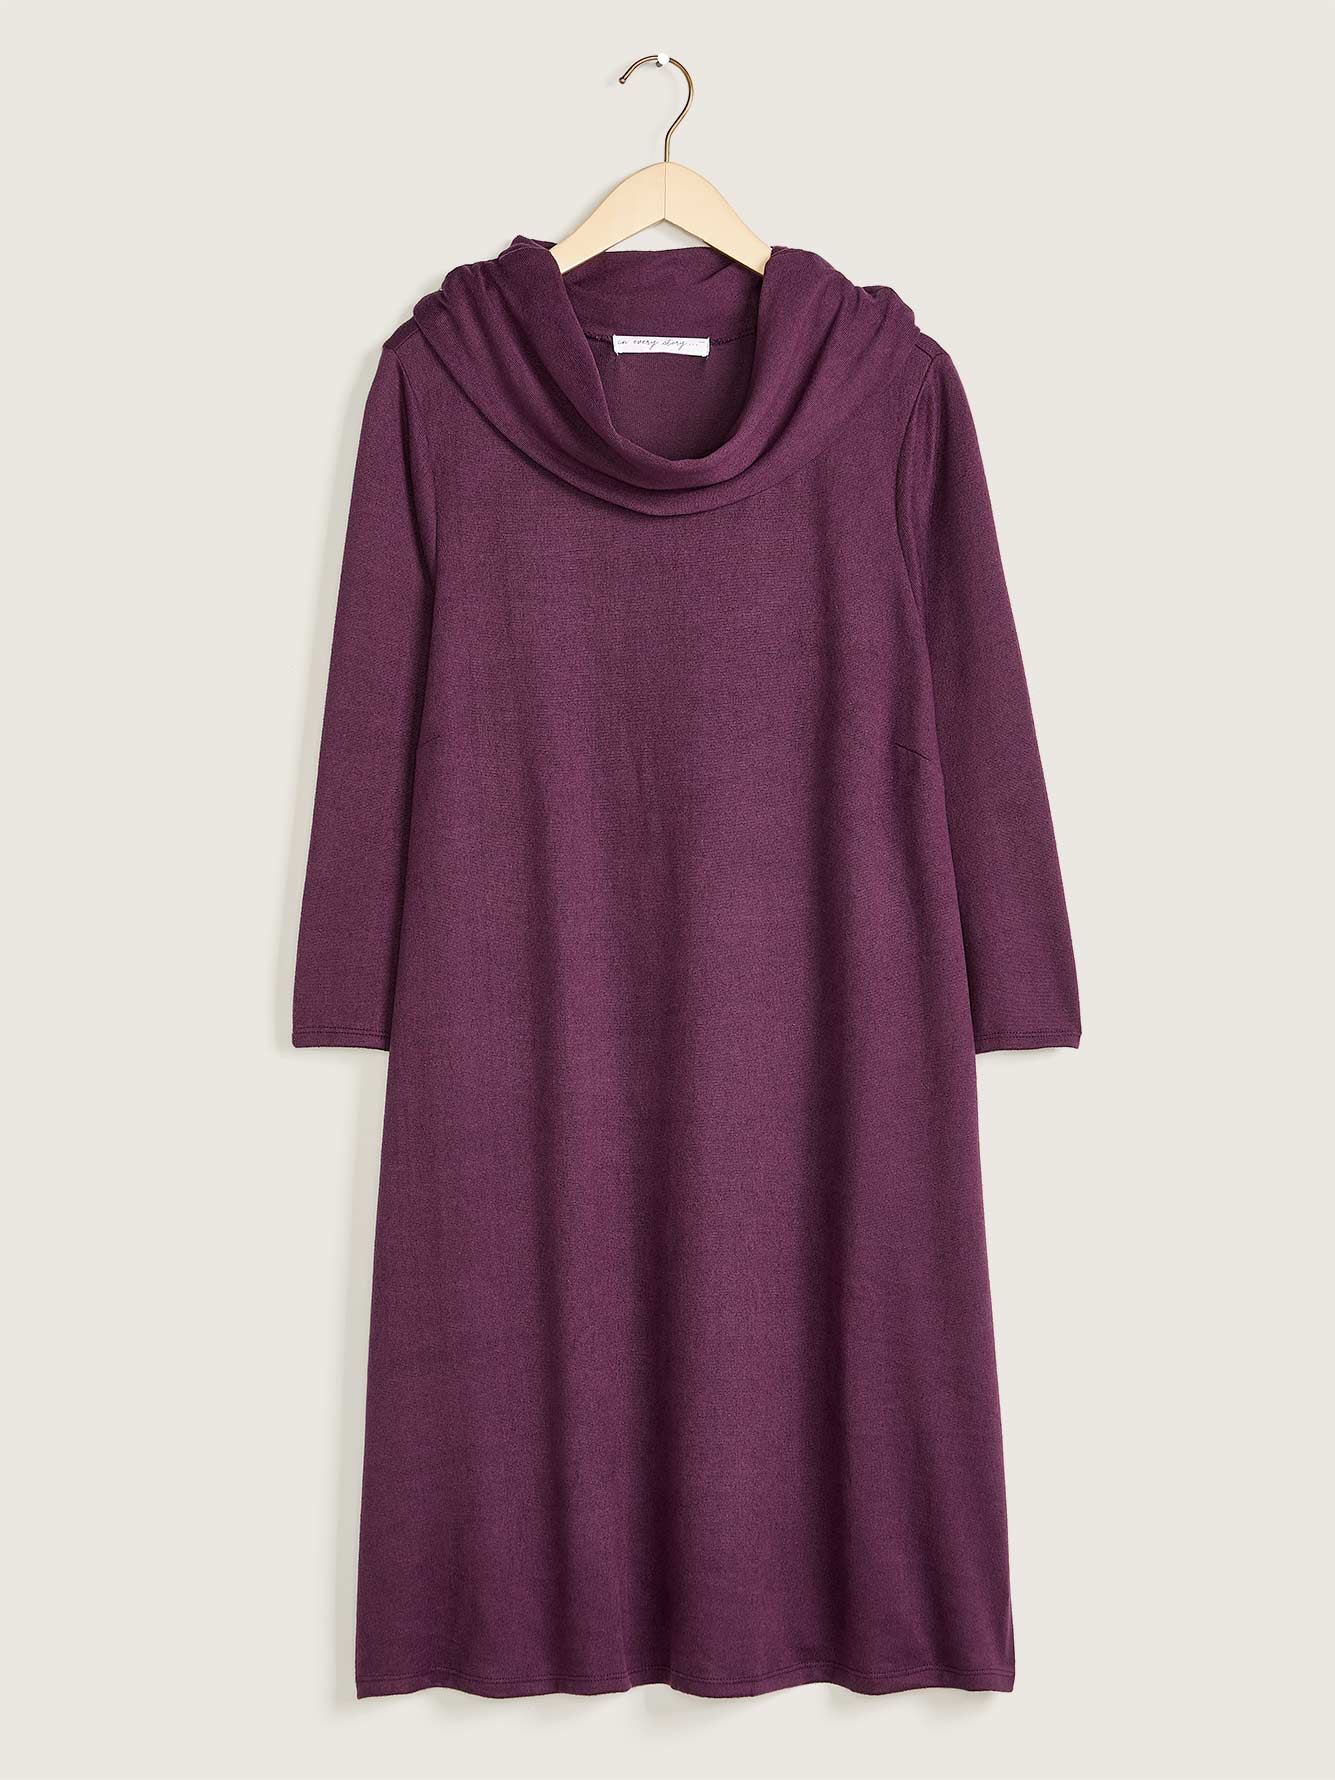 3/4 Sleeve Dress With Fold Over Collar, Solid Colour - Addition Elle